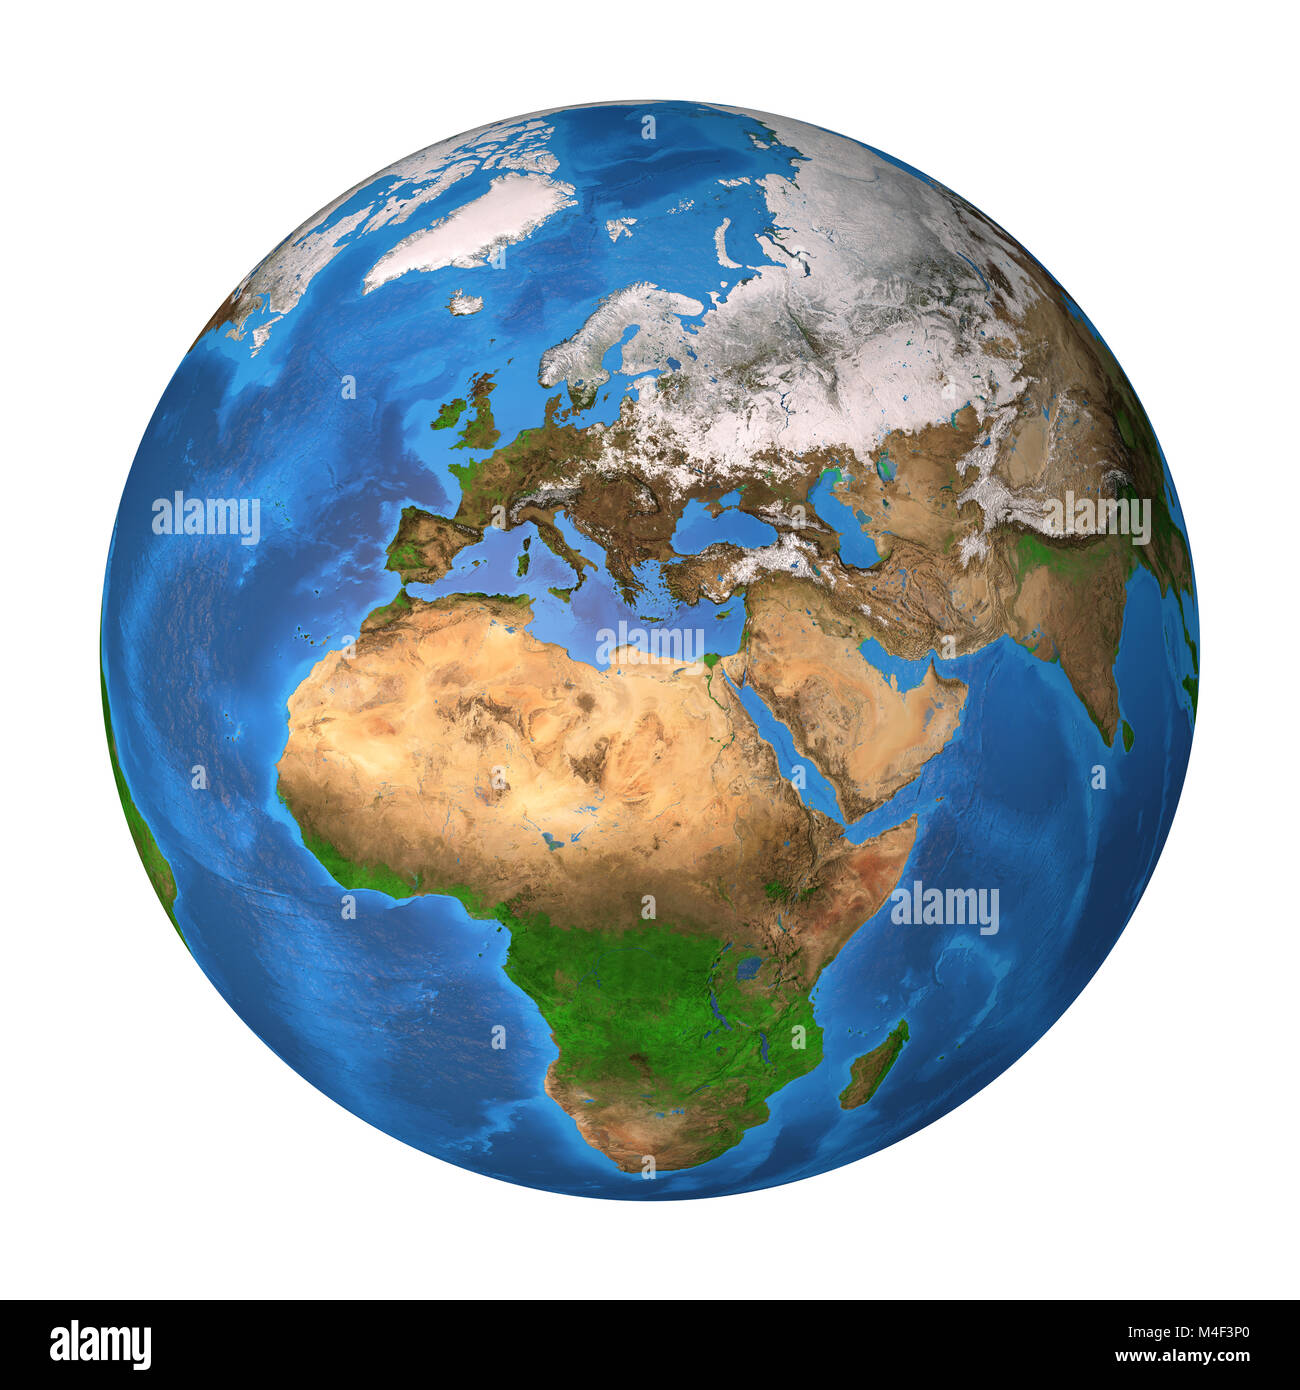 Realistic Satellite View Of Planet Earth In High Resolution Focused